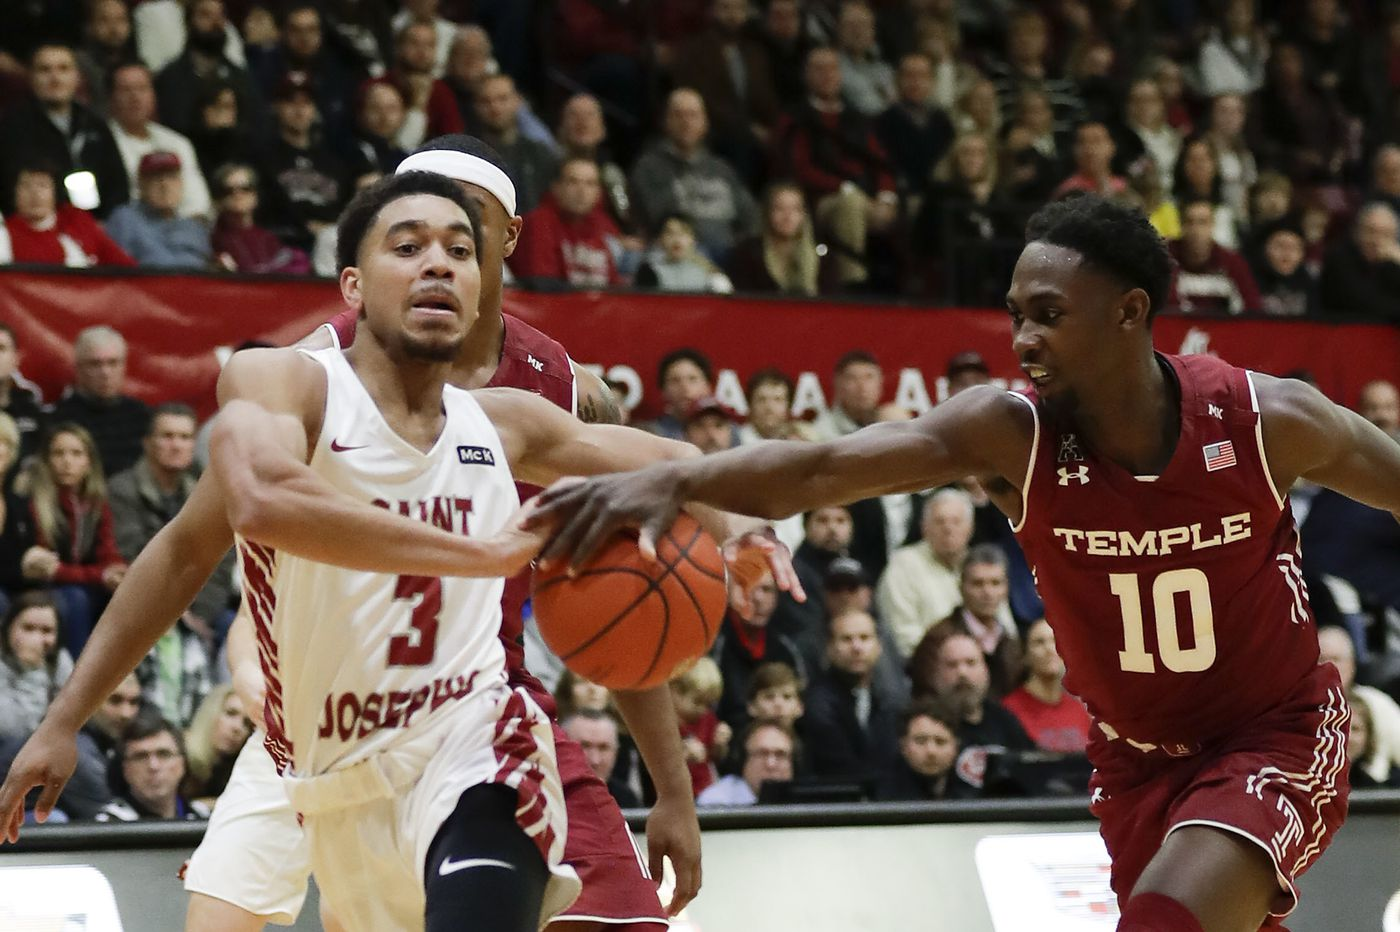 Temple basketball finds three-point range just in time to beat St. Joseph's